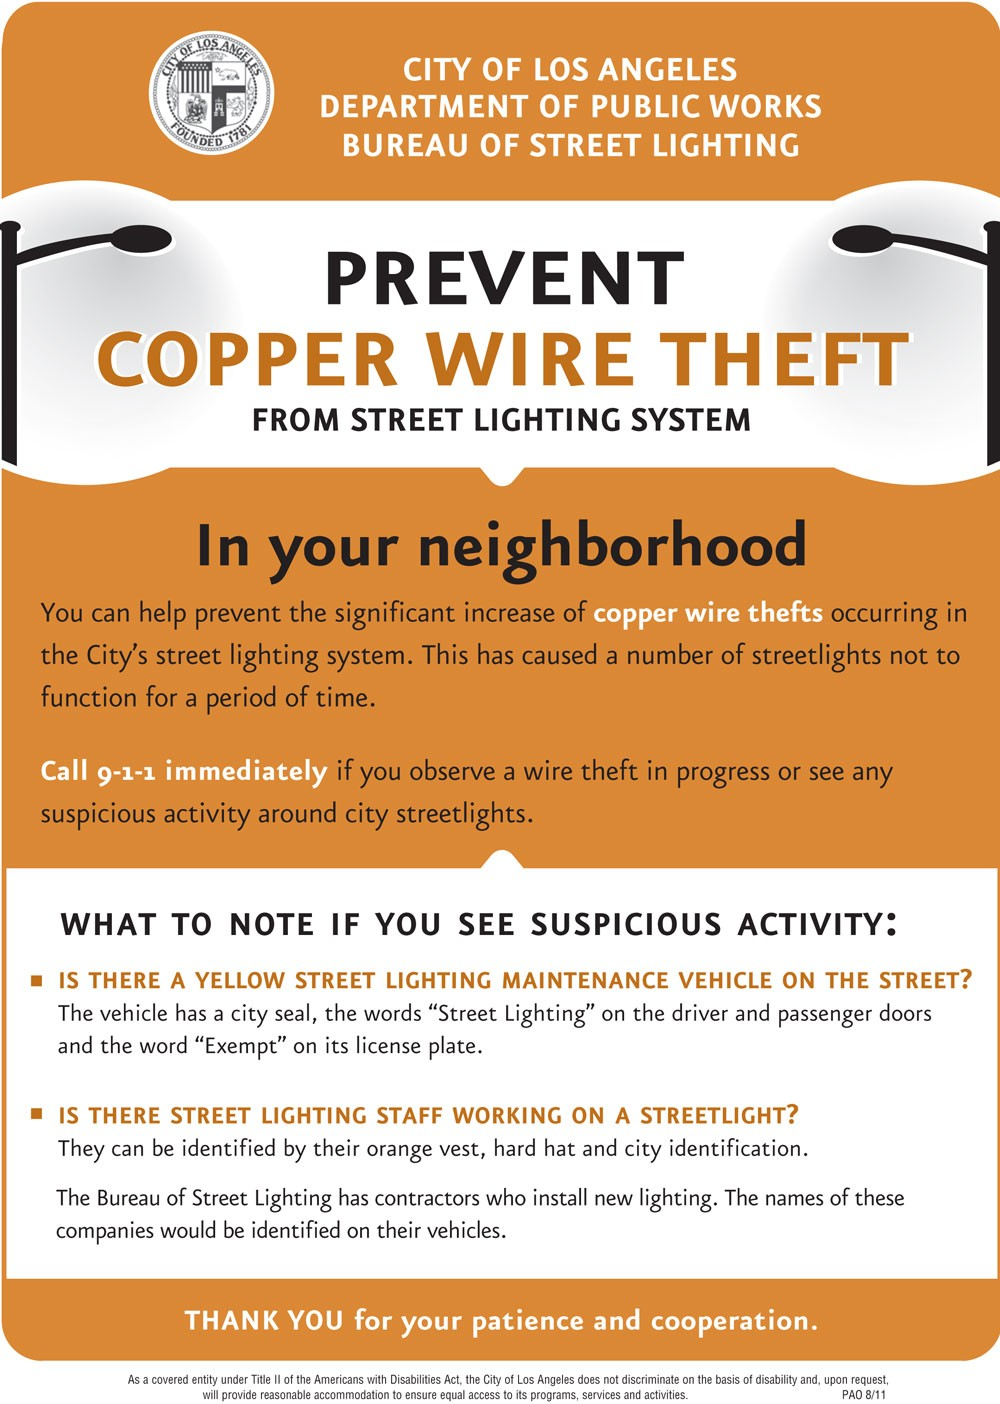 Help Prevent Copper Wire Theft from Street Lights - Mission Hills Neighborhood Council  sc 1 st  Mission Hills Neighborhood Council & Help Prevent Copper Wire Theft from Street Lights - Mission Hills ... azcodes.com